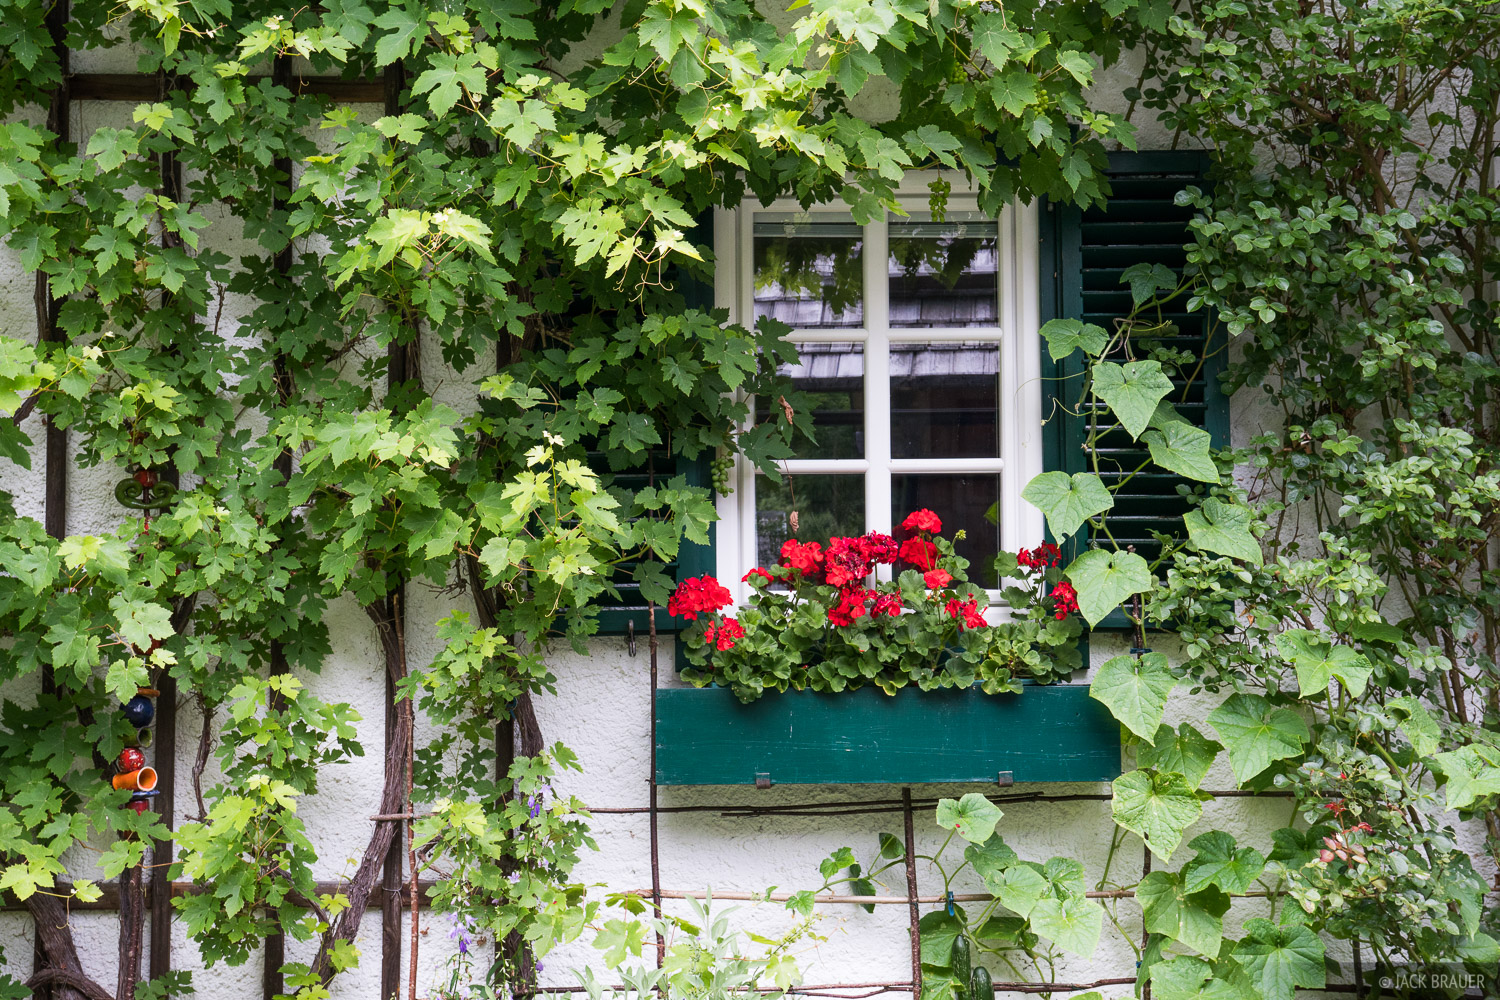 Another obligatory photo of a quaint window surrounded by ivy, on the outskirts of Hallstatt.